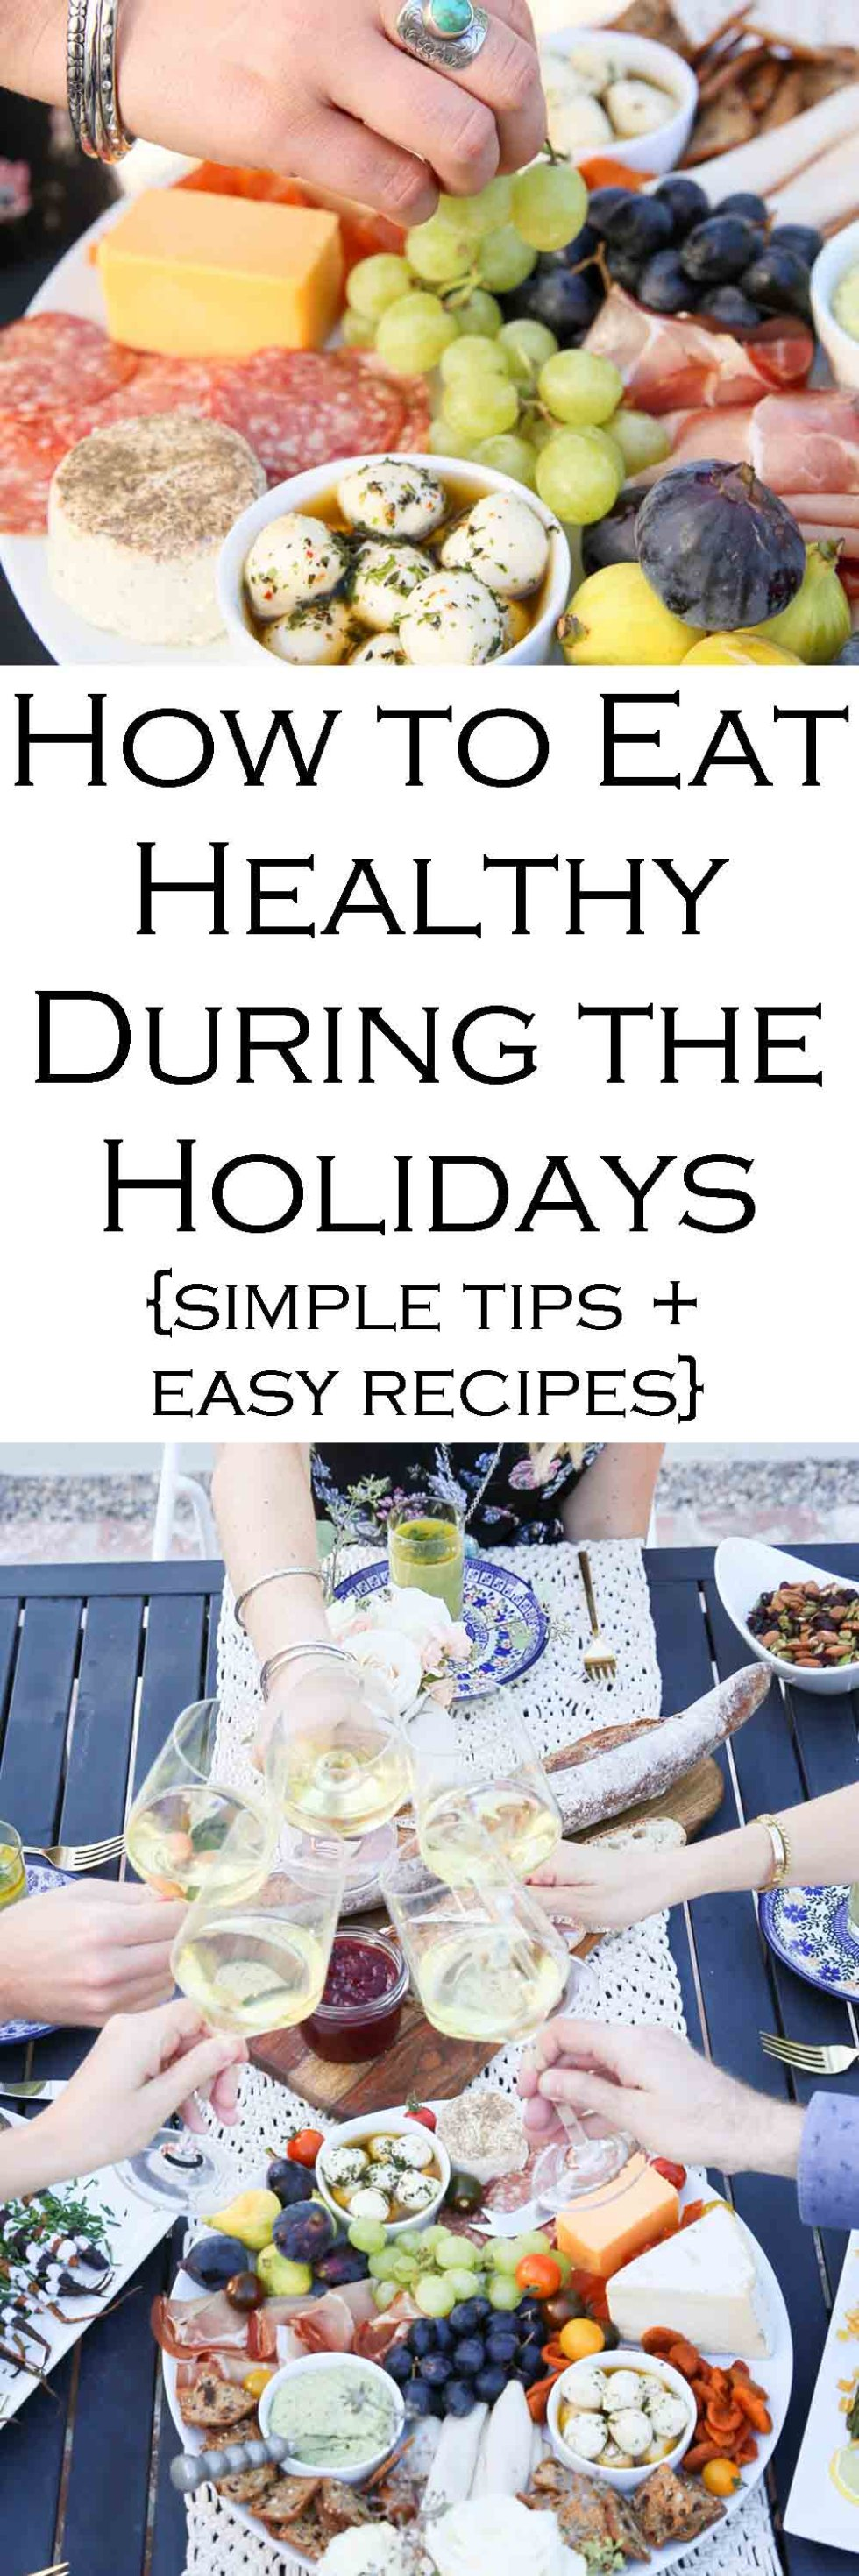 Healthy Holidays   How to Eat Healthy During the Holidays. Healthy Tips to Avoid Overeating. #recipes #healthy #holidays #holidayseason #healthythanksgiving #thanksgivingrecipes #healthychristmasrecipes #christmasparty #christmaspartyrecipes #LMrecipes #healthytips #healthtips